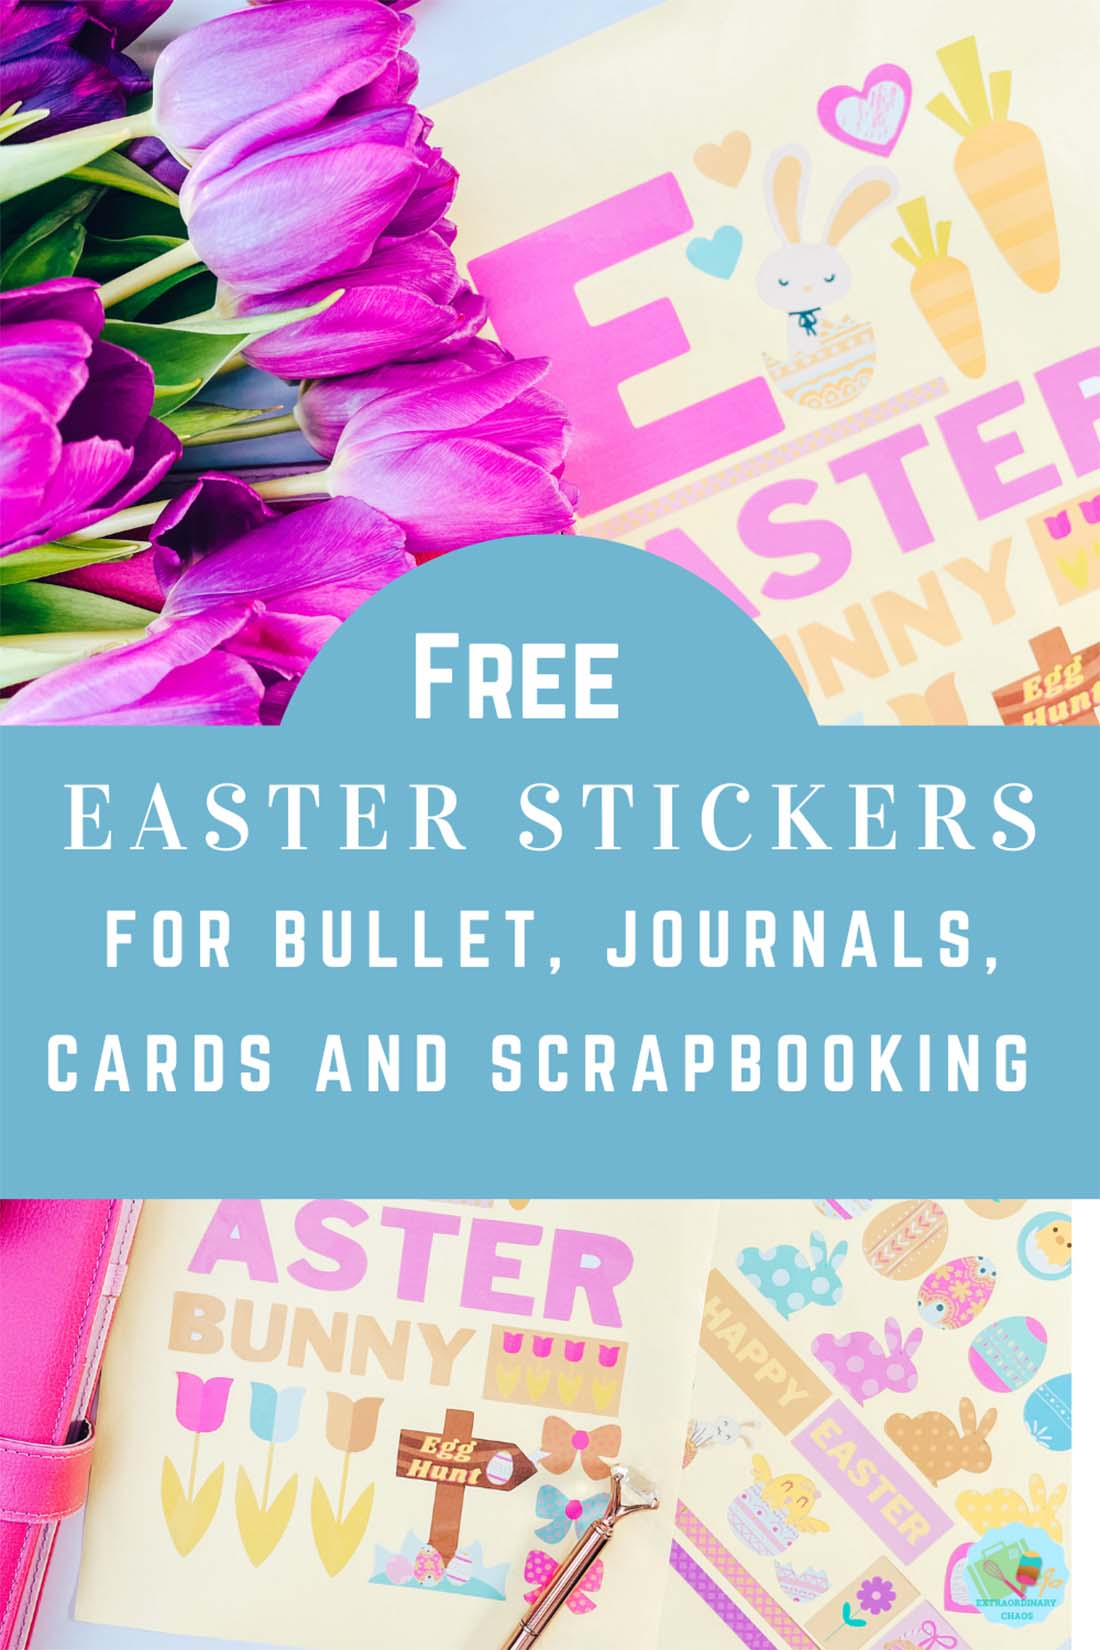 Free Easter printable stickers for Cricut Print and cut or to cut out by hand fro cards, planners scrapbooking and bullet journals